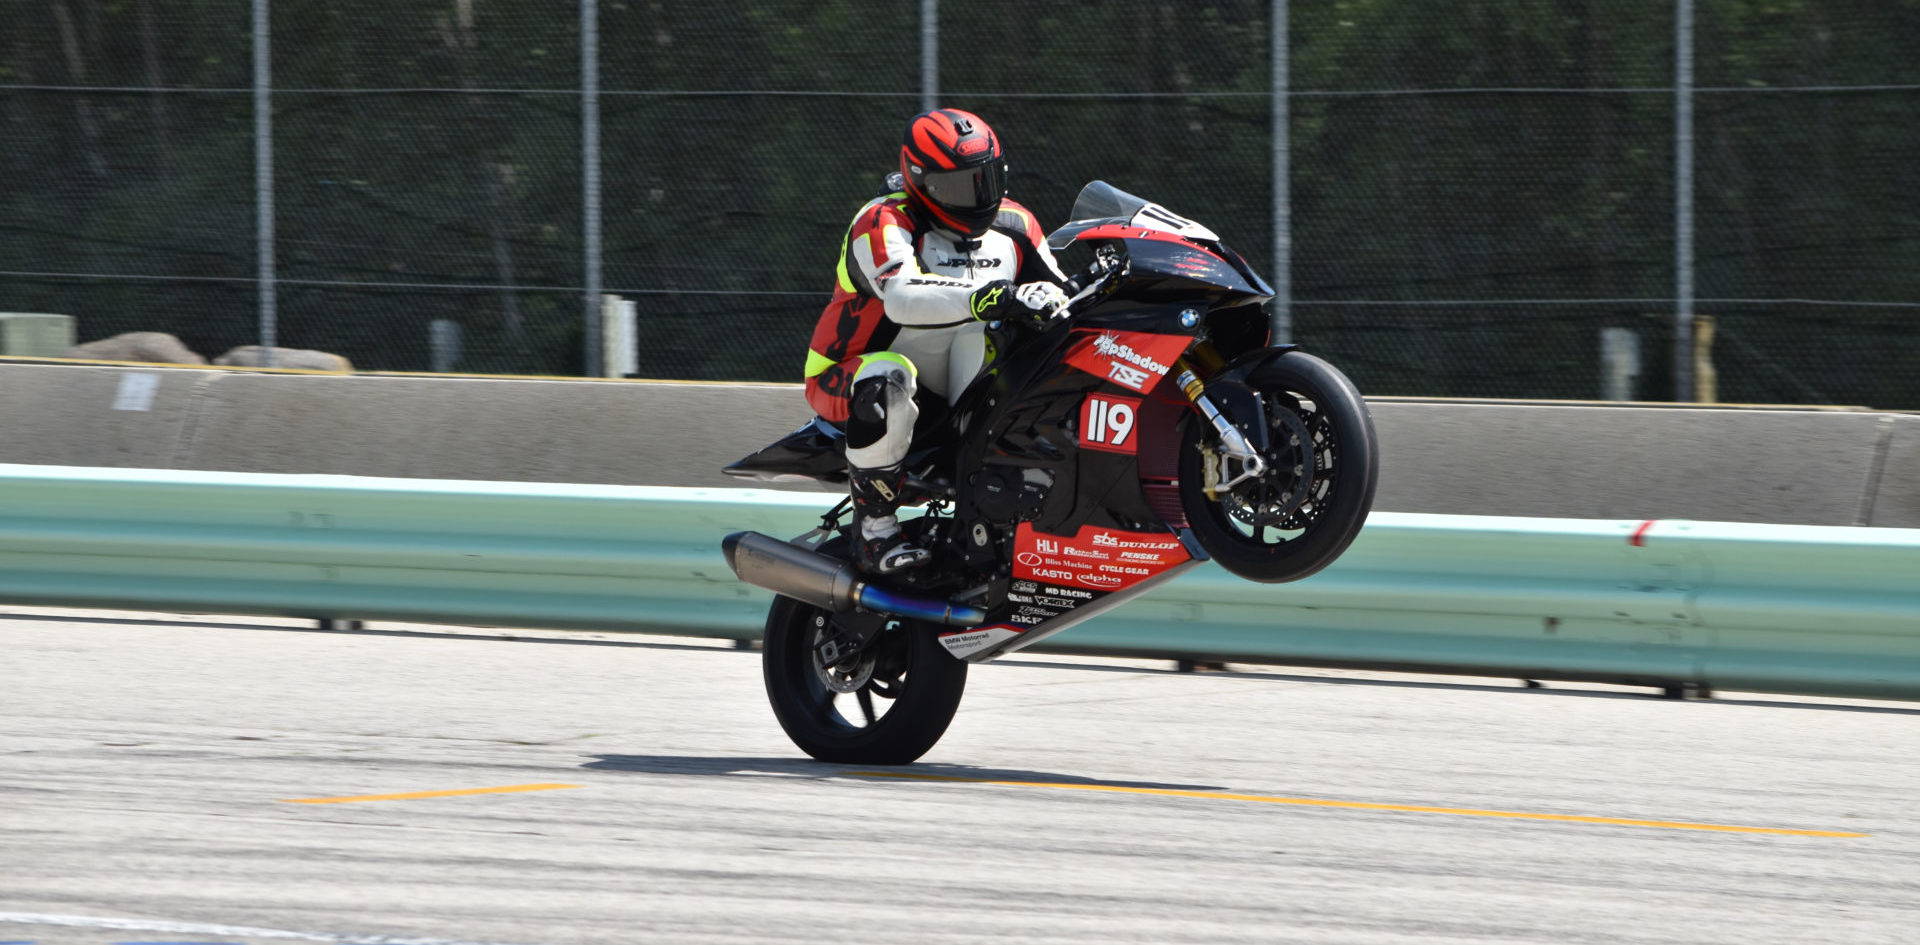 Stefan Dolipski (119) at speed. Photo by H&E Services, courtesy TSE Racing.